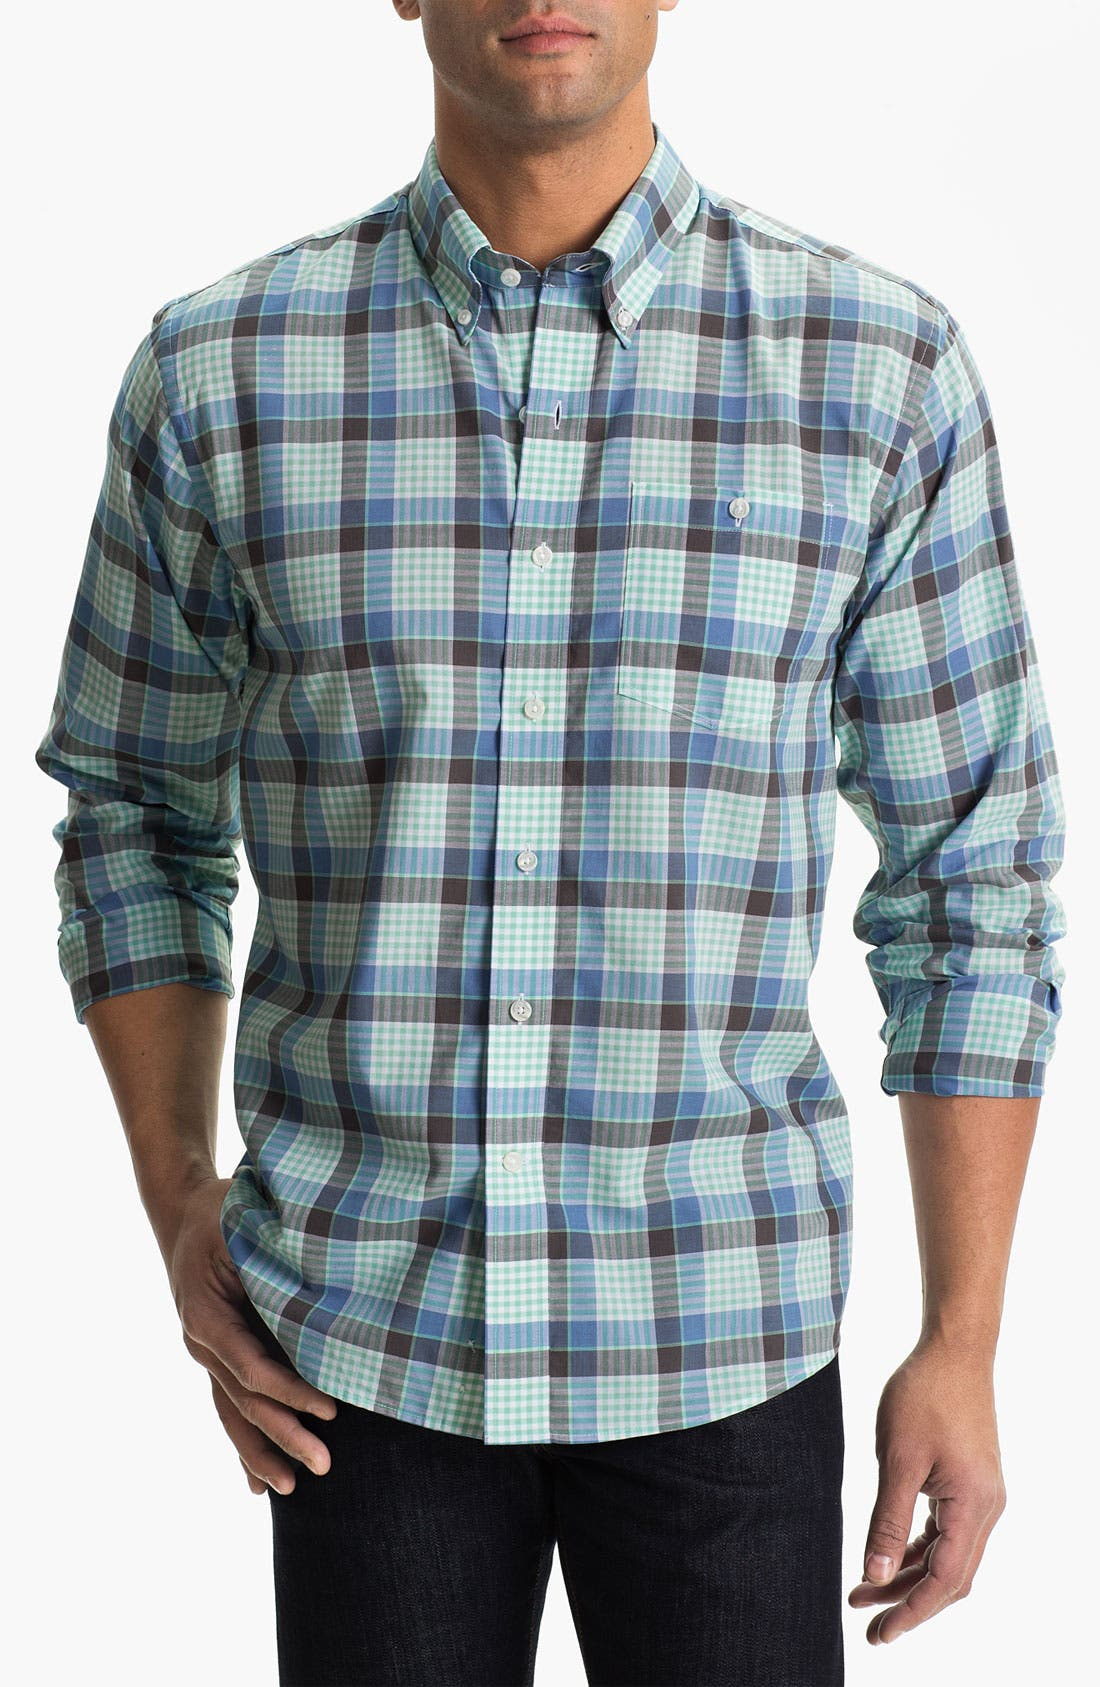 Alternate Image 1 Selected - Cutter & Buck 'Tabor Plaid' Classic Fit Sport Shirt (Big & Tall)